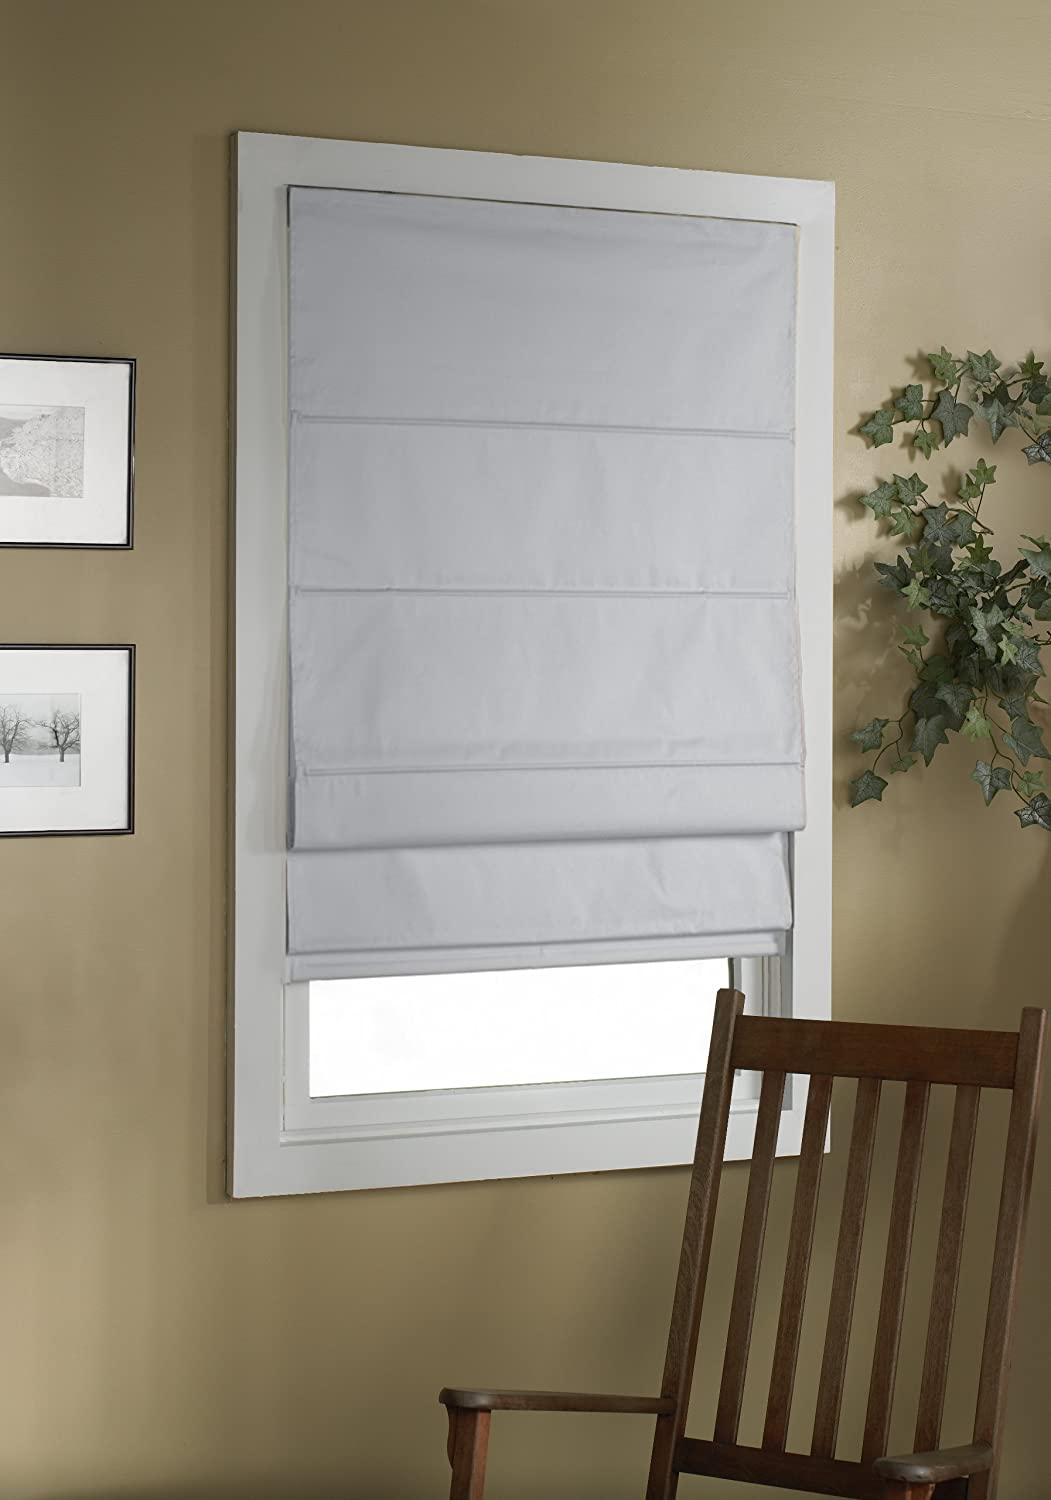 Green Mountain Vista Thermal Blackout Cordless Roman Shade, 34 by 63-Inch, White